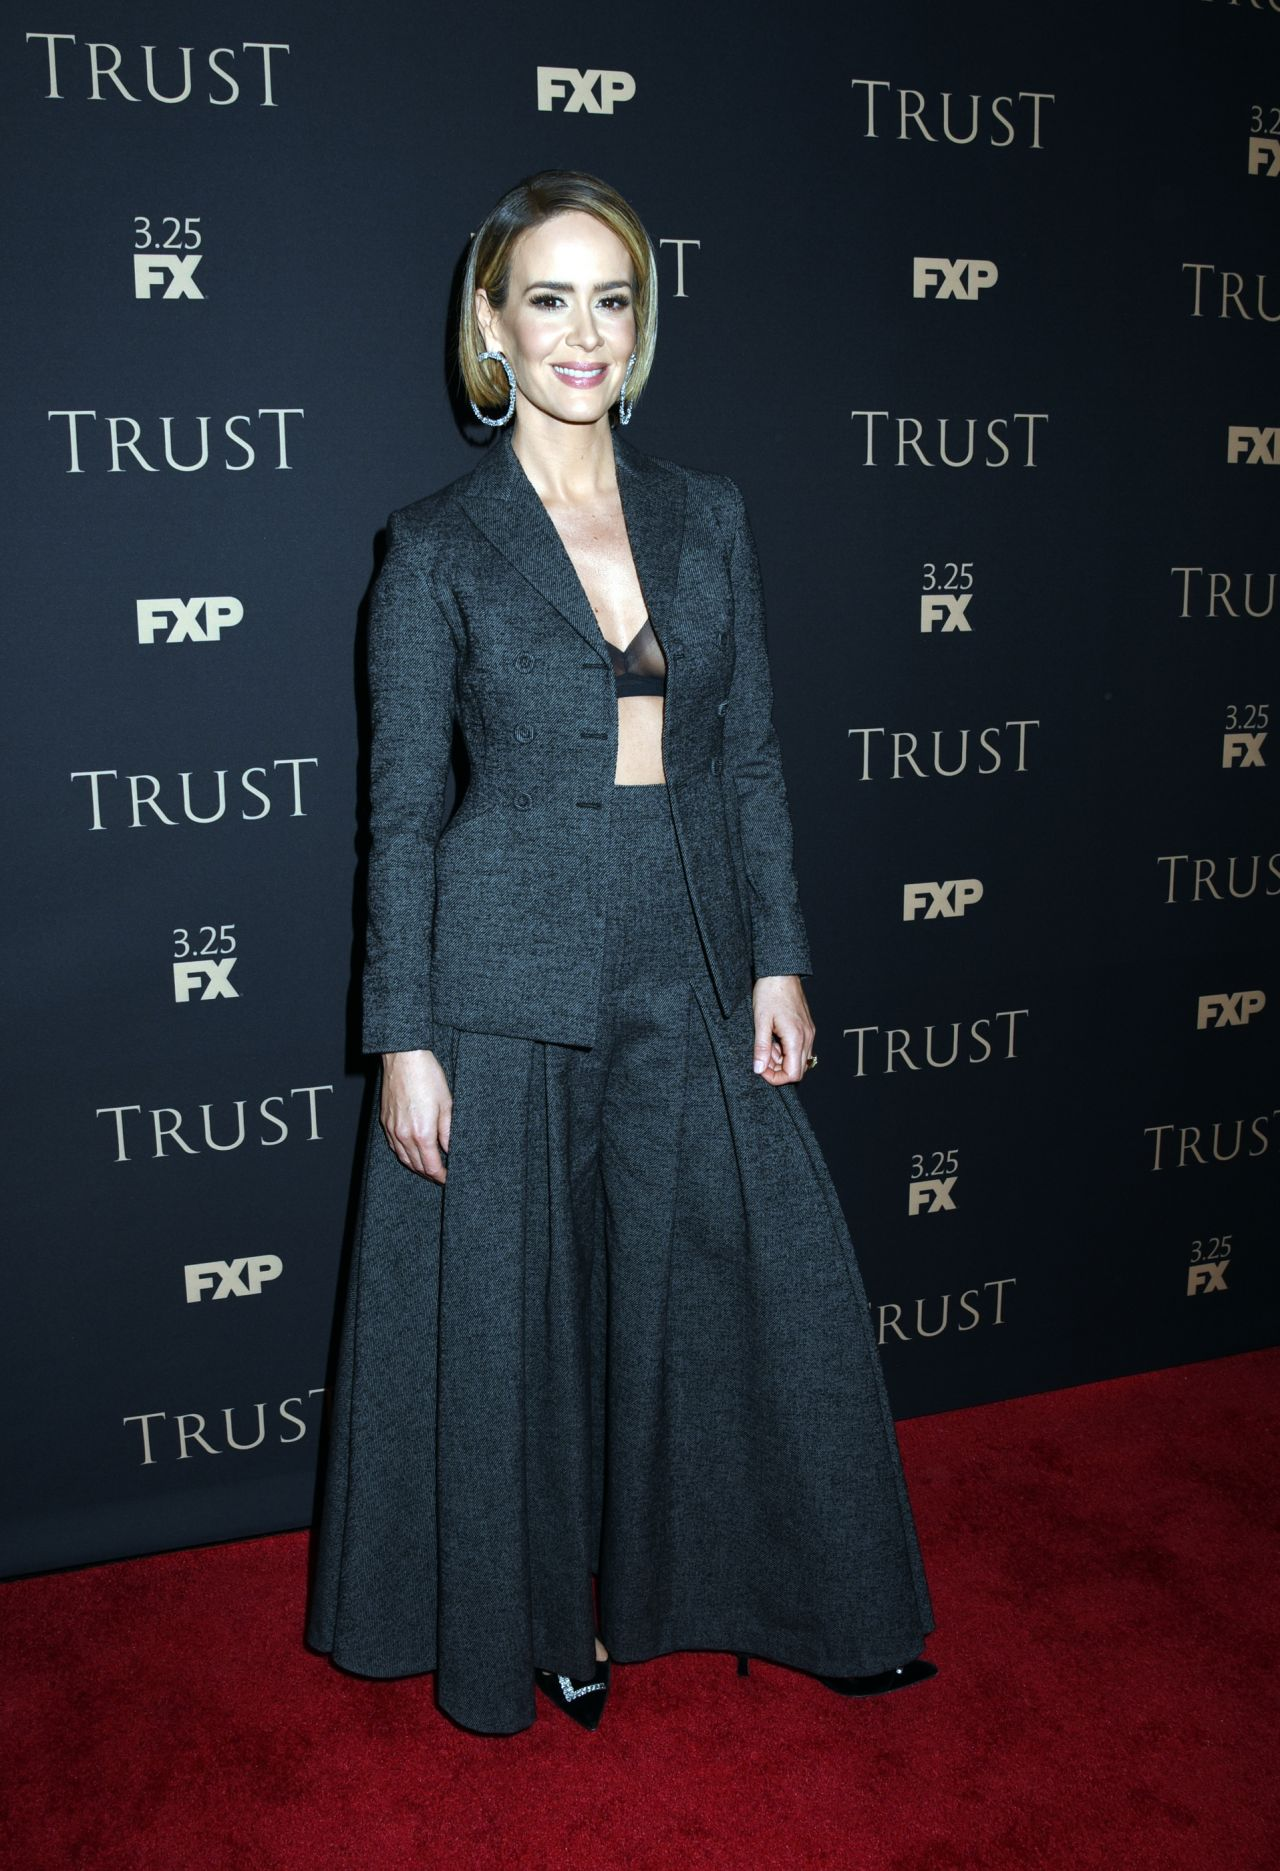 http://celebmafia.com/wp-content/uploads/2018/03/sarah-paulson-fx-all-star-party-in-new-york-03-15-2018-4.jpg